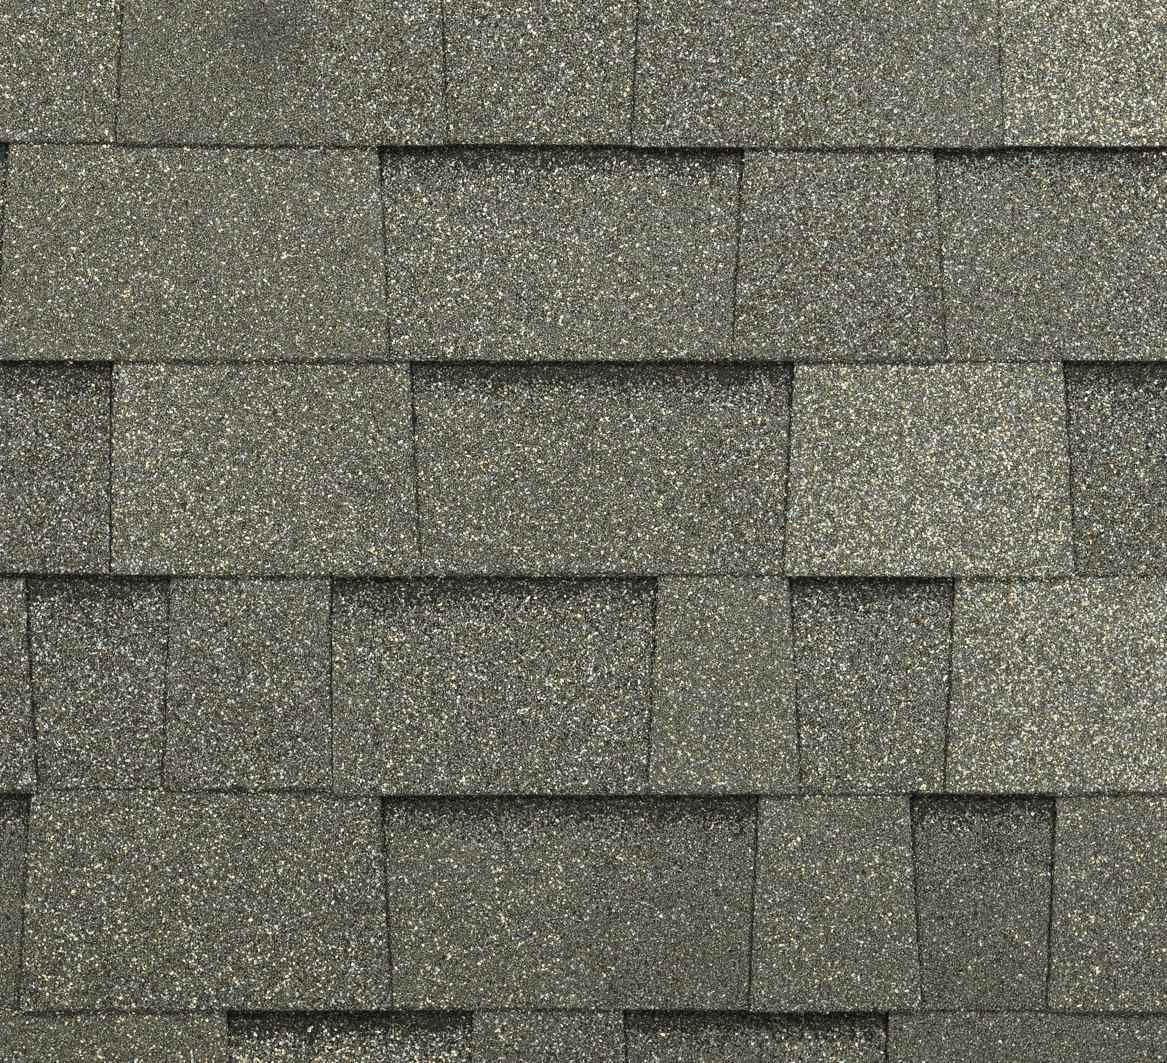 Color Your Roof With A Variety Of Shingle Colors Offered By Able Roof